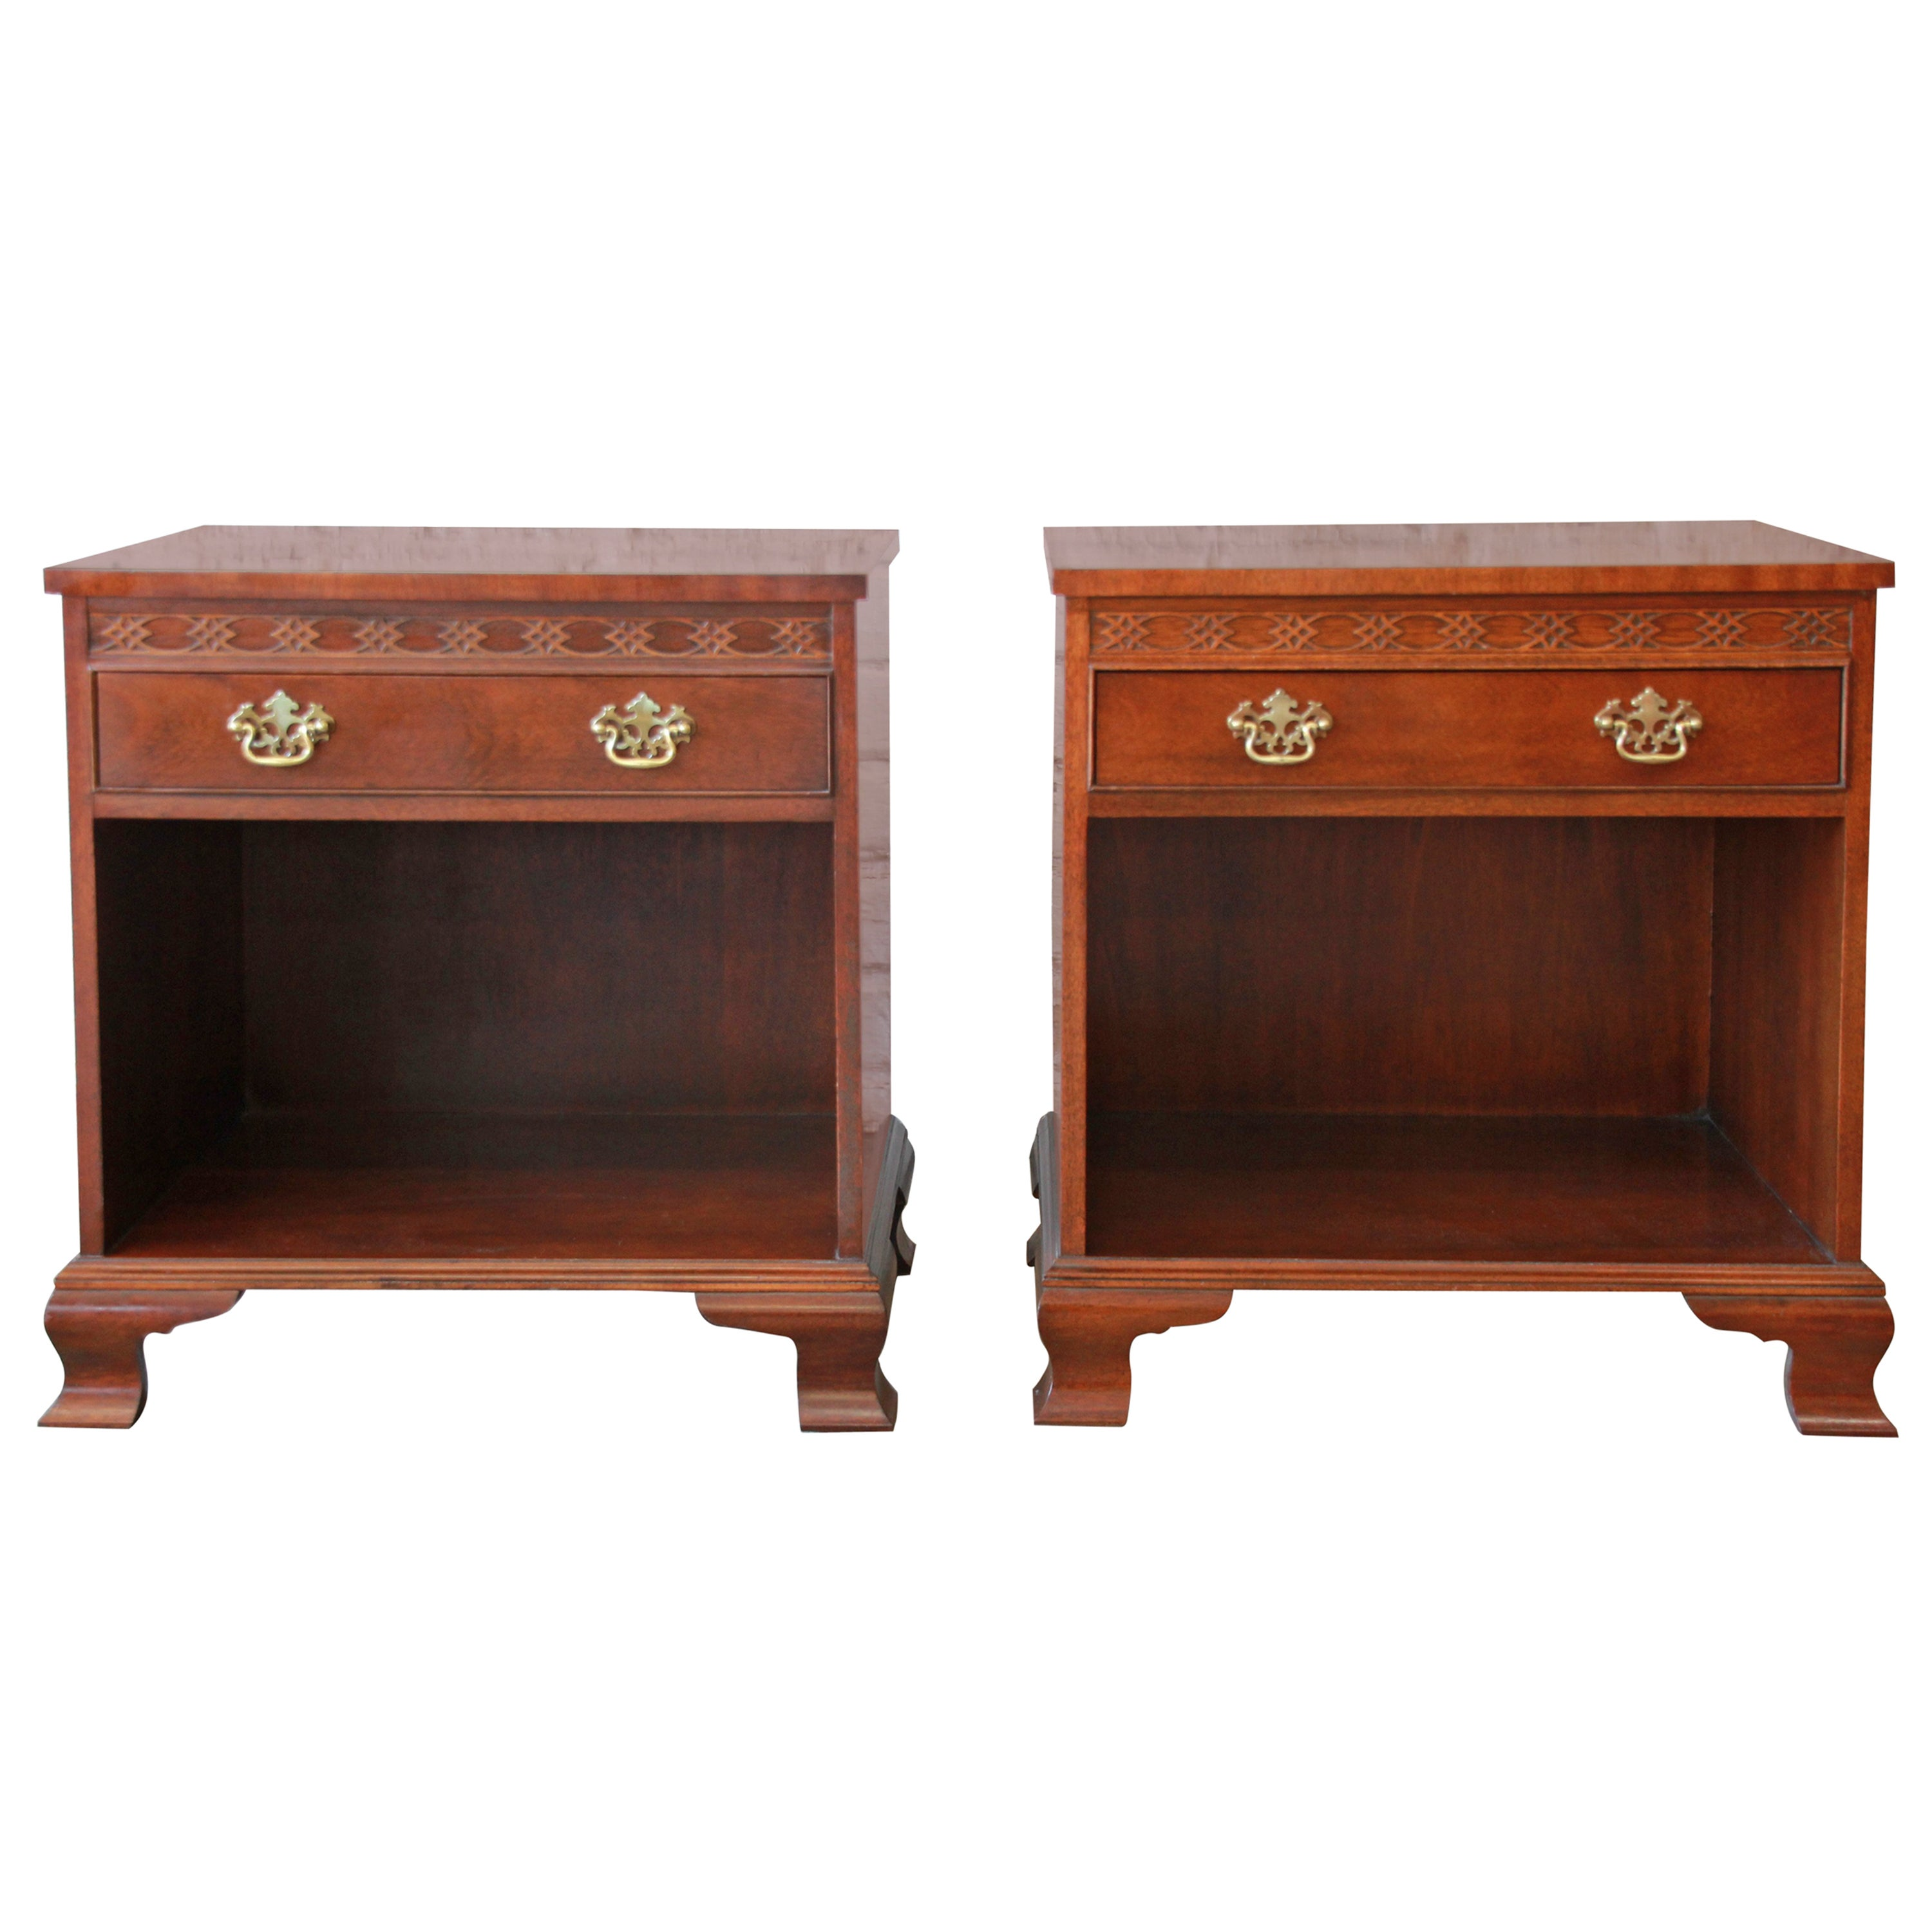 Baker furniture chippendale style mahogany nightstands pair for sale at 1stdibs